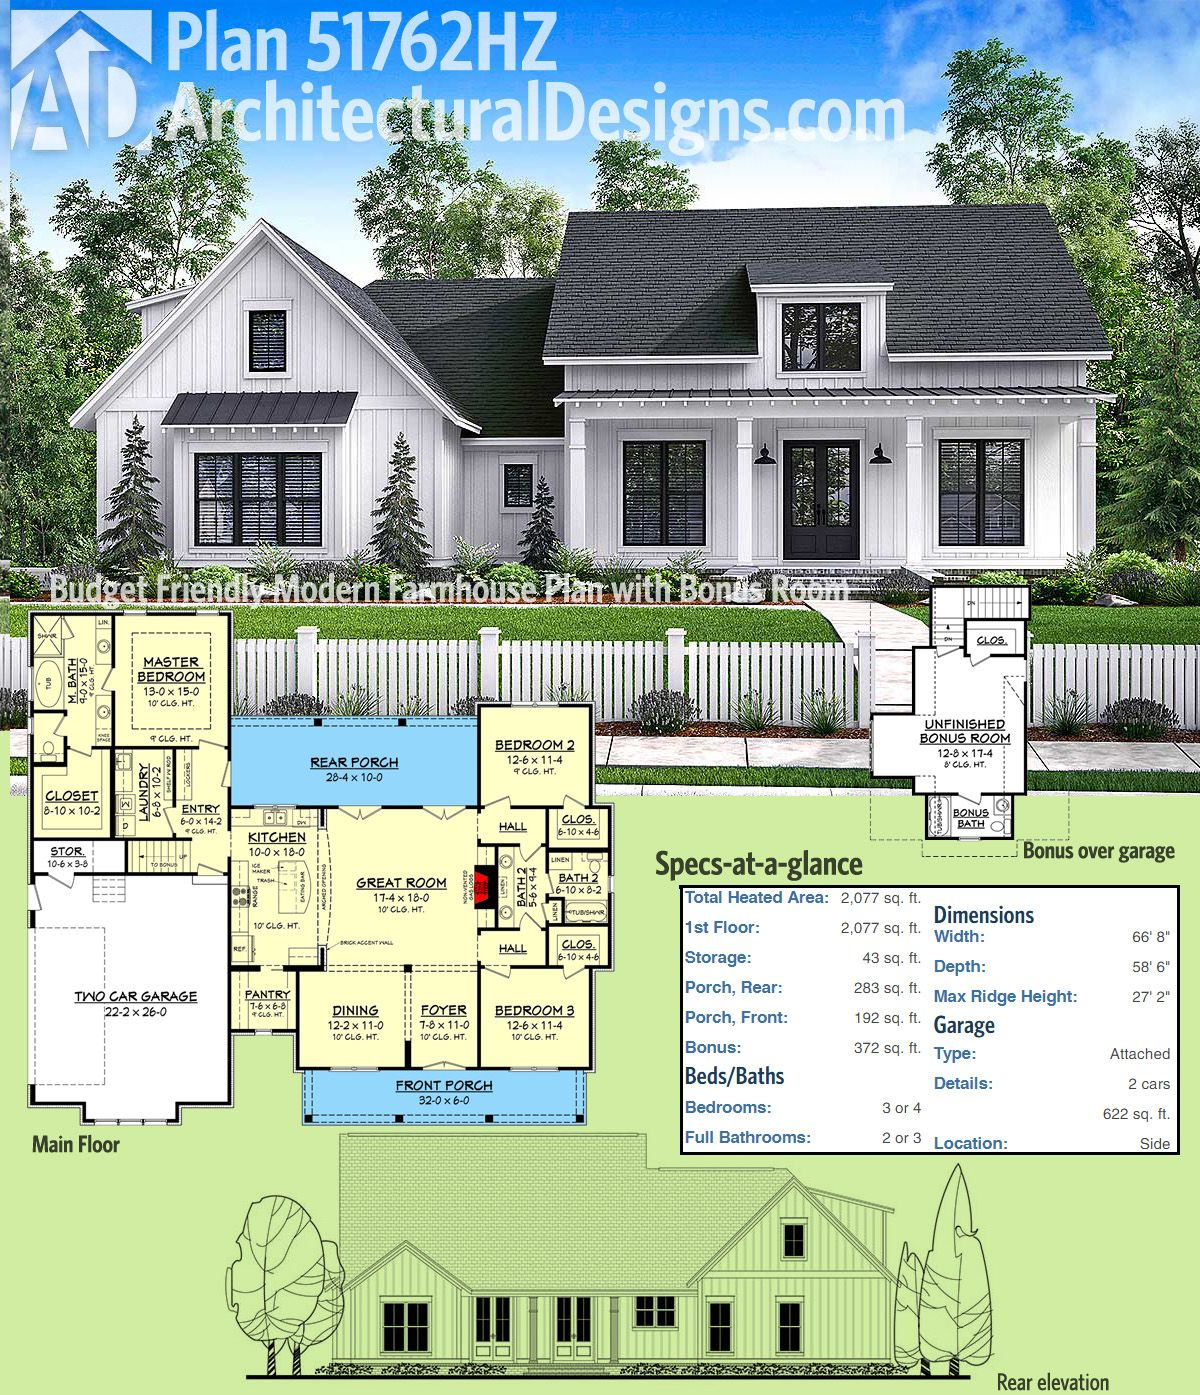 Architectural Designs Modern Farmhouse Plan Plan 51762HZ Gives You Just  Over 2,000 Square Feet Of Heated Awesome Design